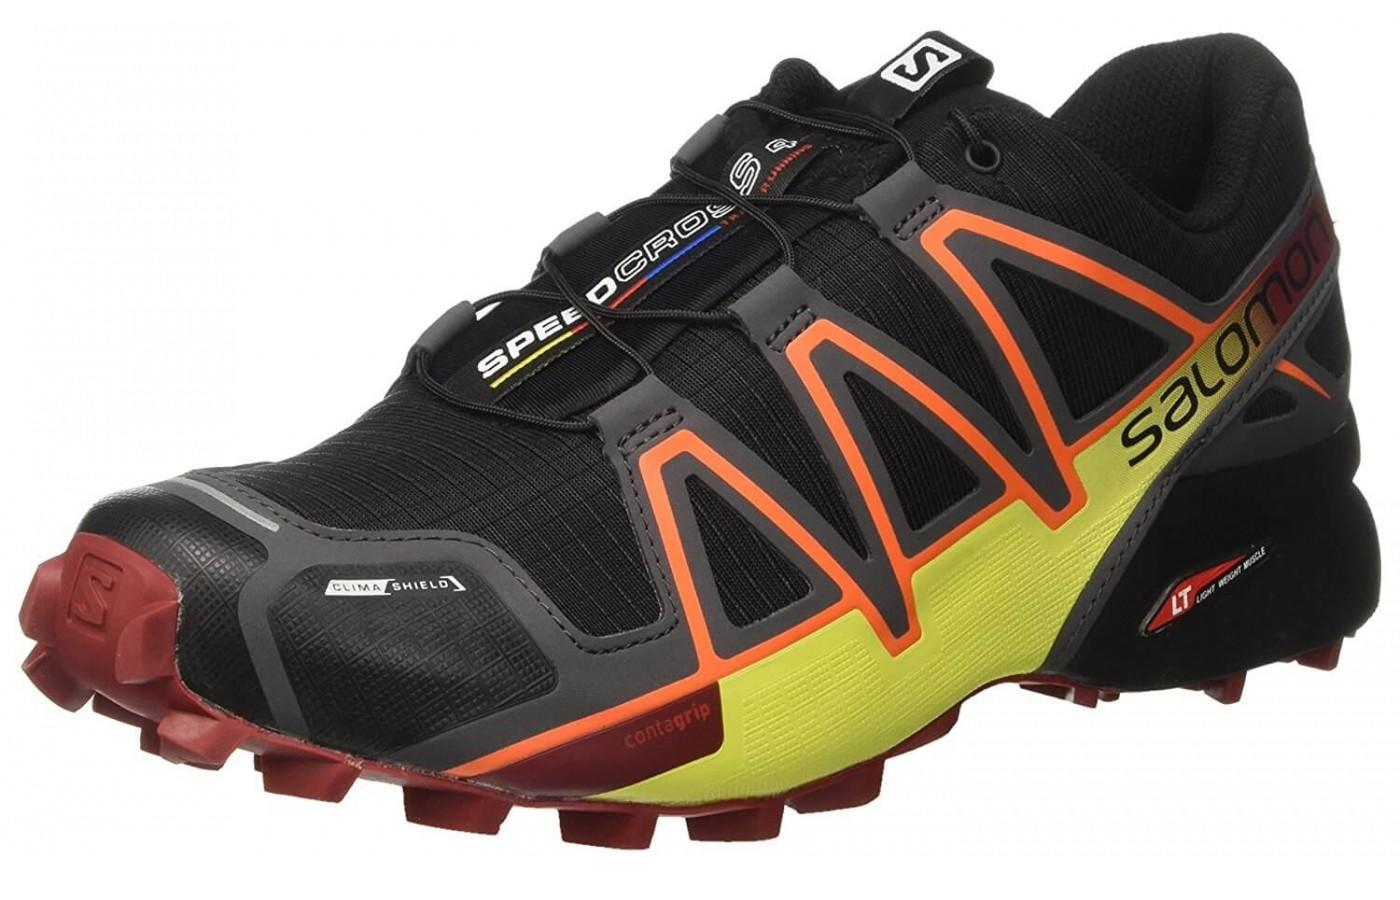 586a0aeb8251 The Salomon Speedcross 4CS is a durable trail running shoe for the outdoor  adventurer.